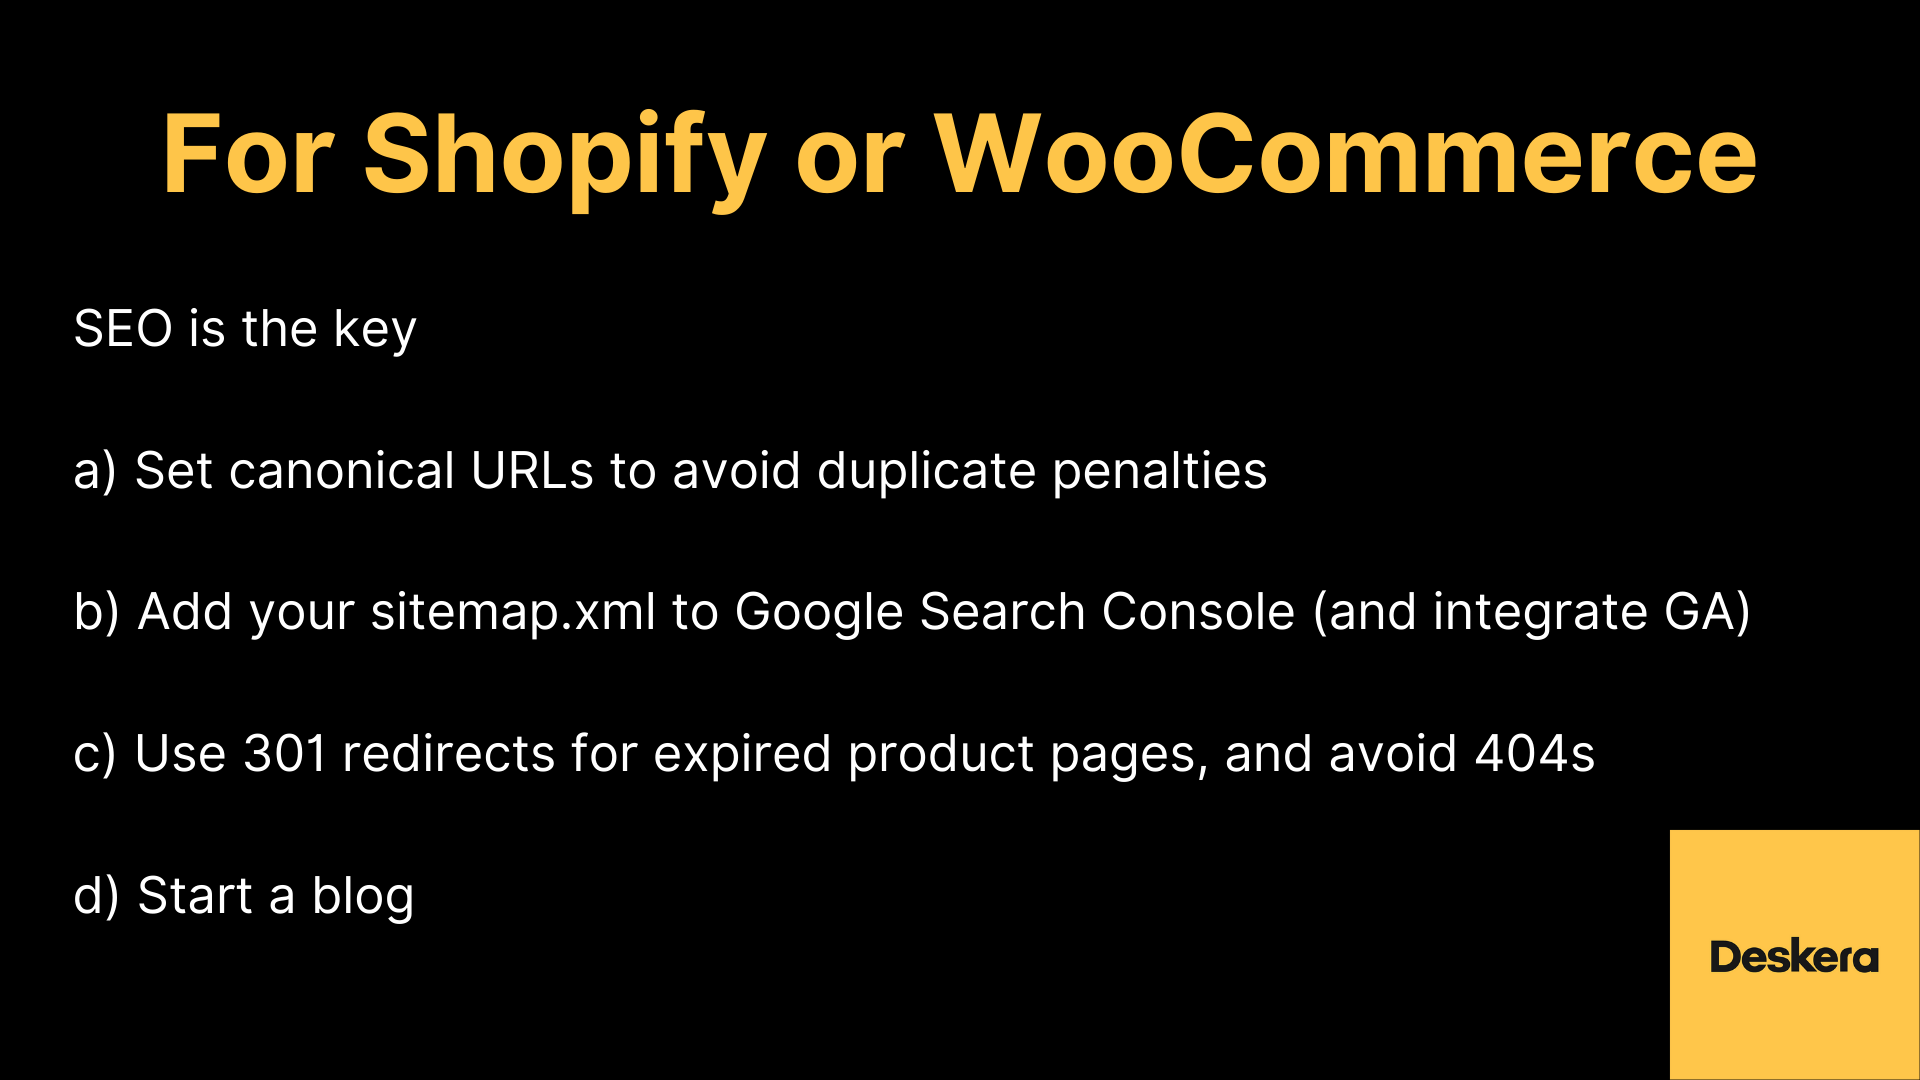 eCommerce Tip to Increase Visibility on Shopify or WooCommerce and Improve Sales of Your Business